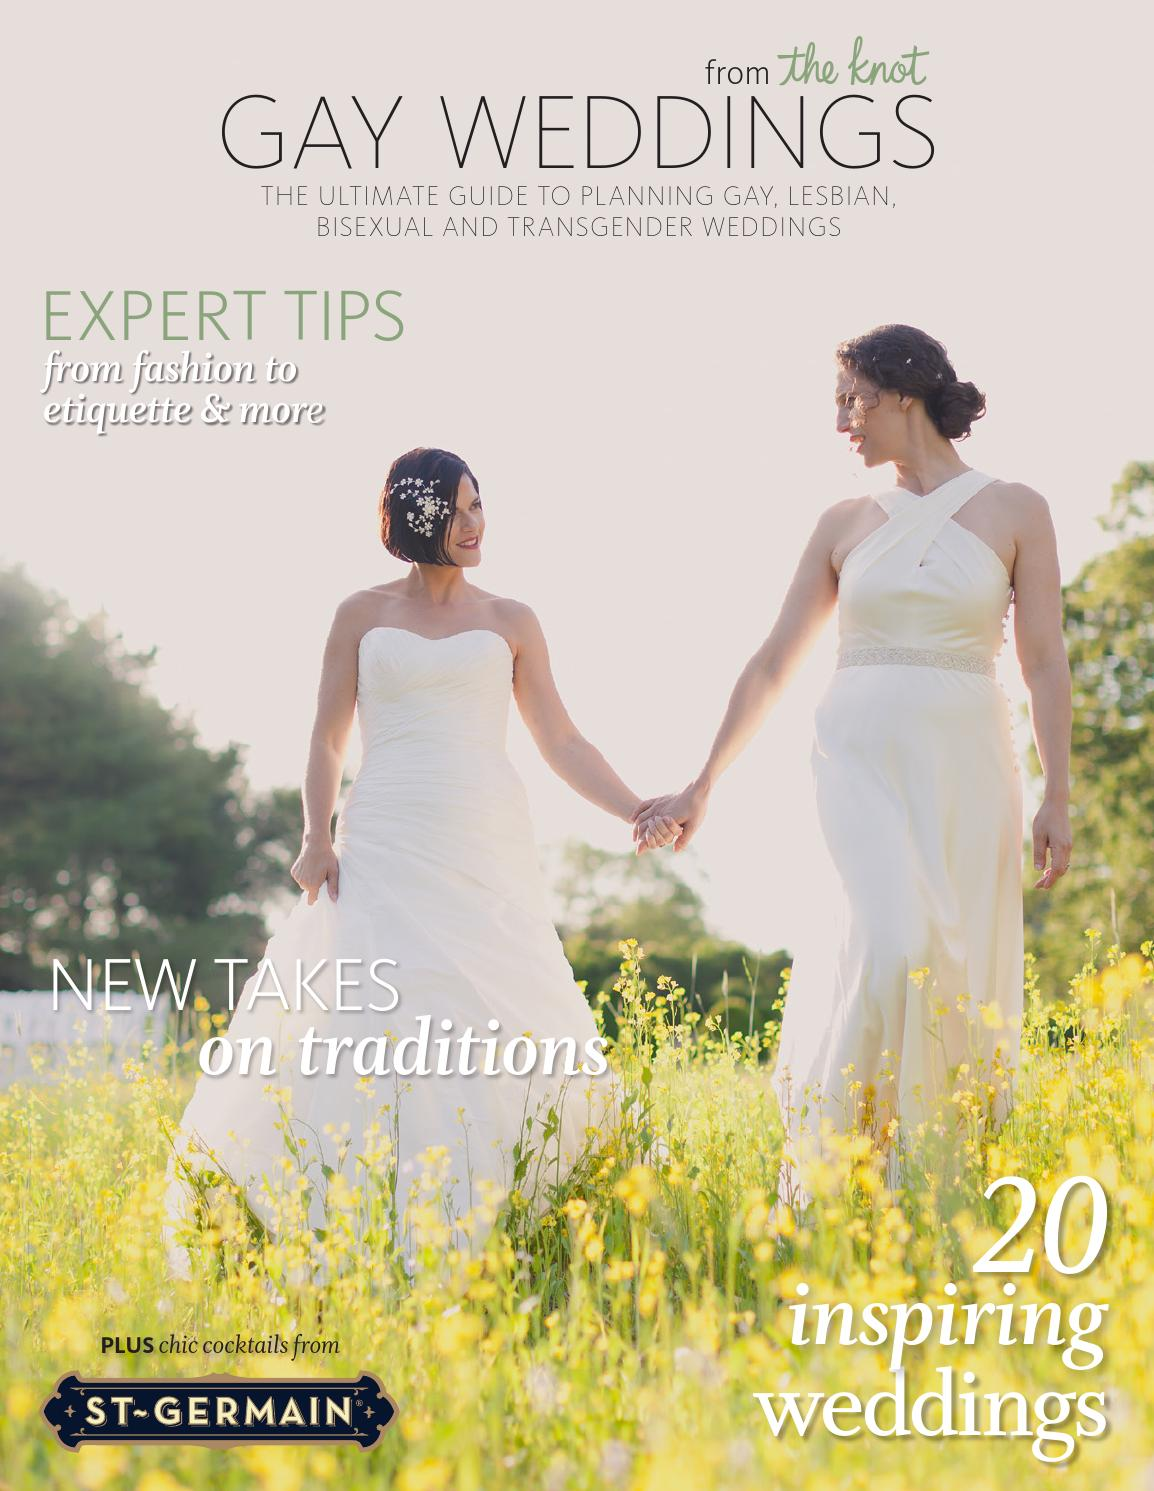 Gay Weddings From The Knot 2013 Edition 1 By Gay Weddings From